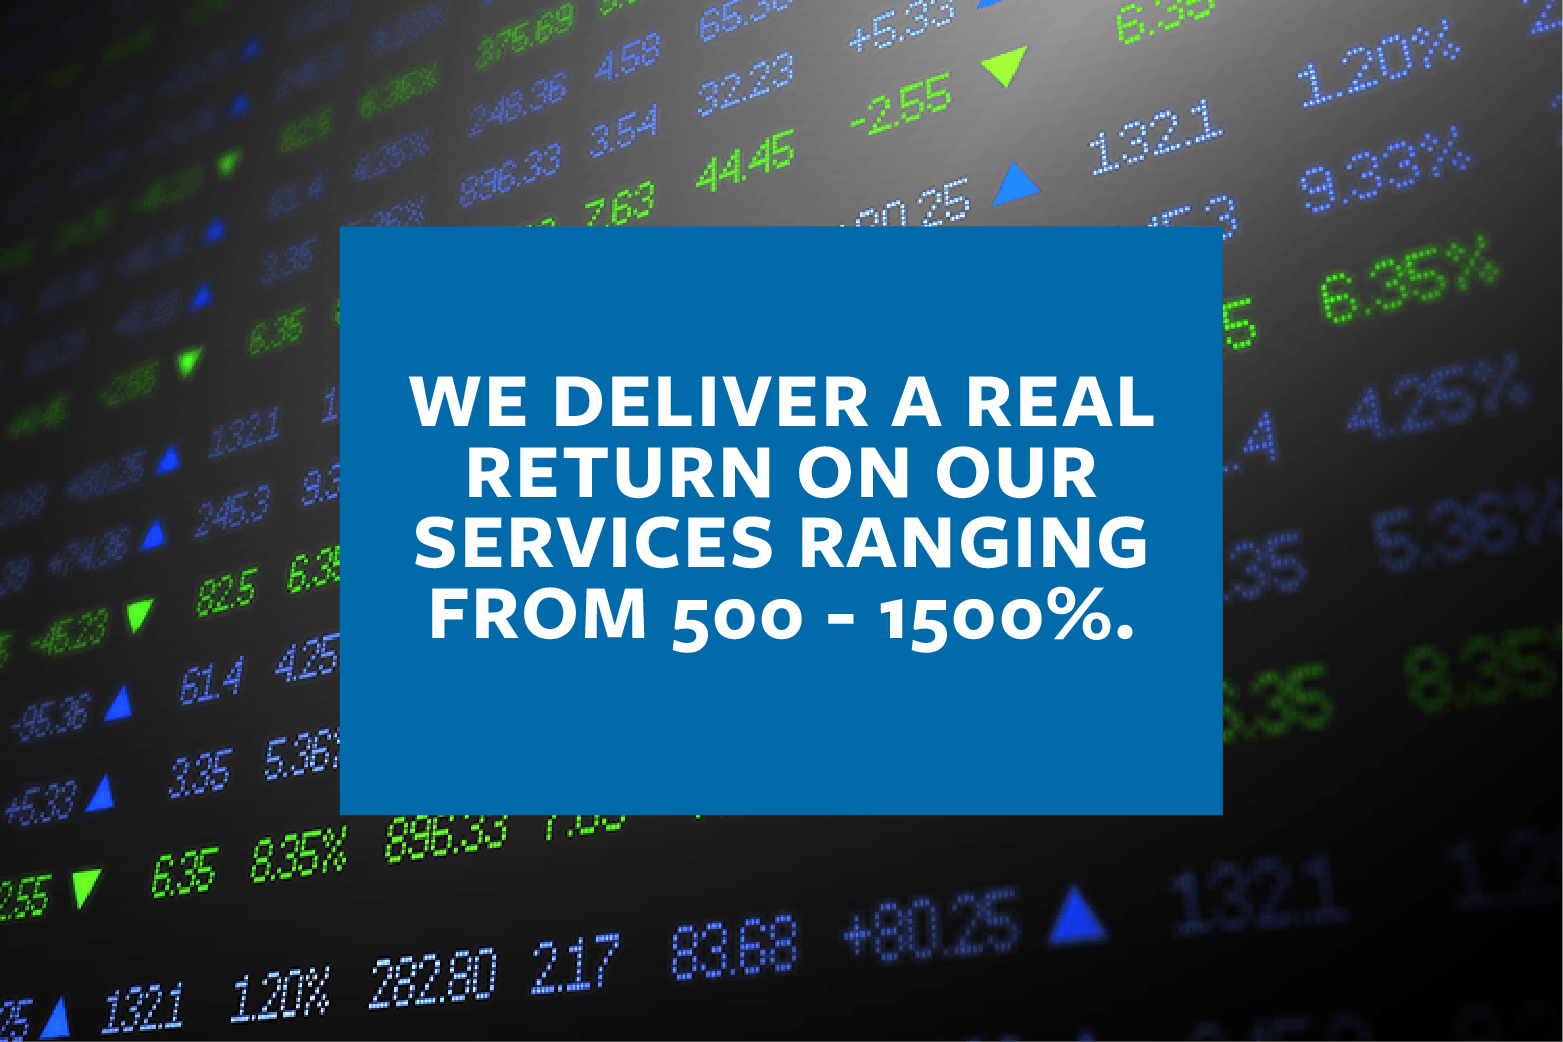 Trindent delivers 500 - 1500% ROI on our services